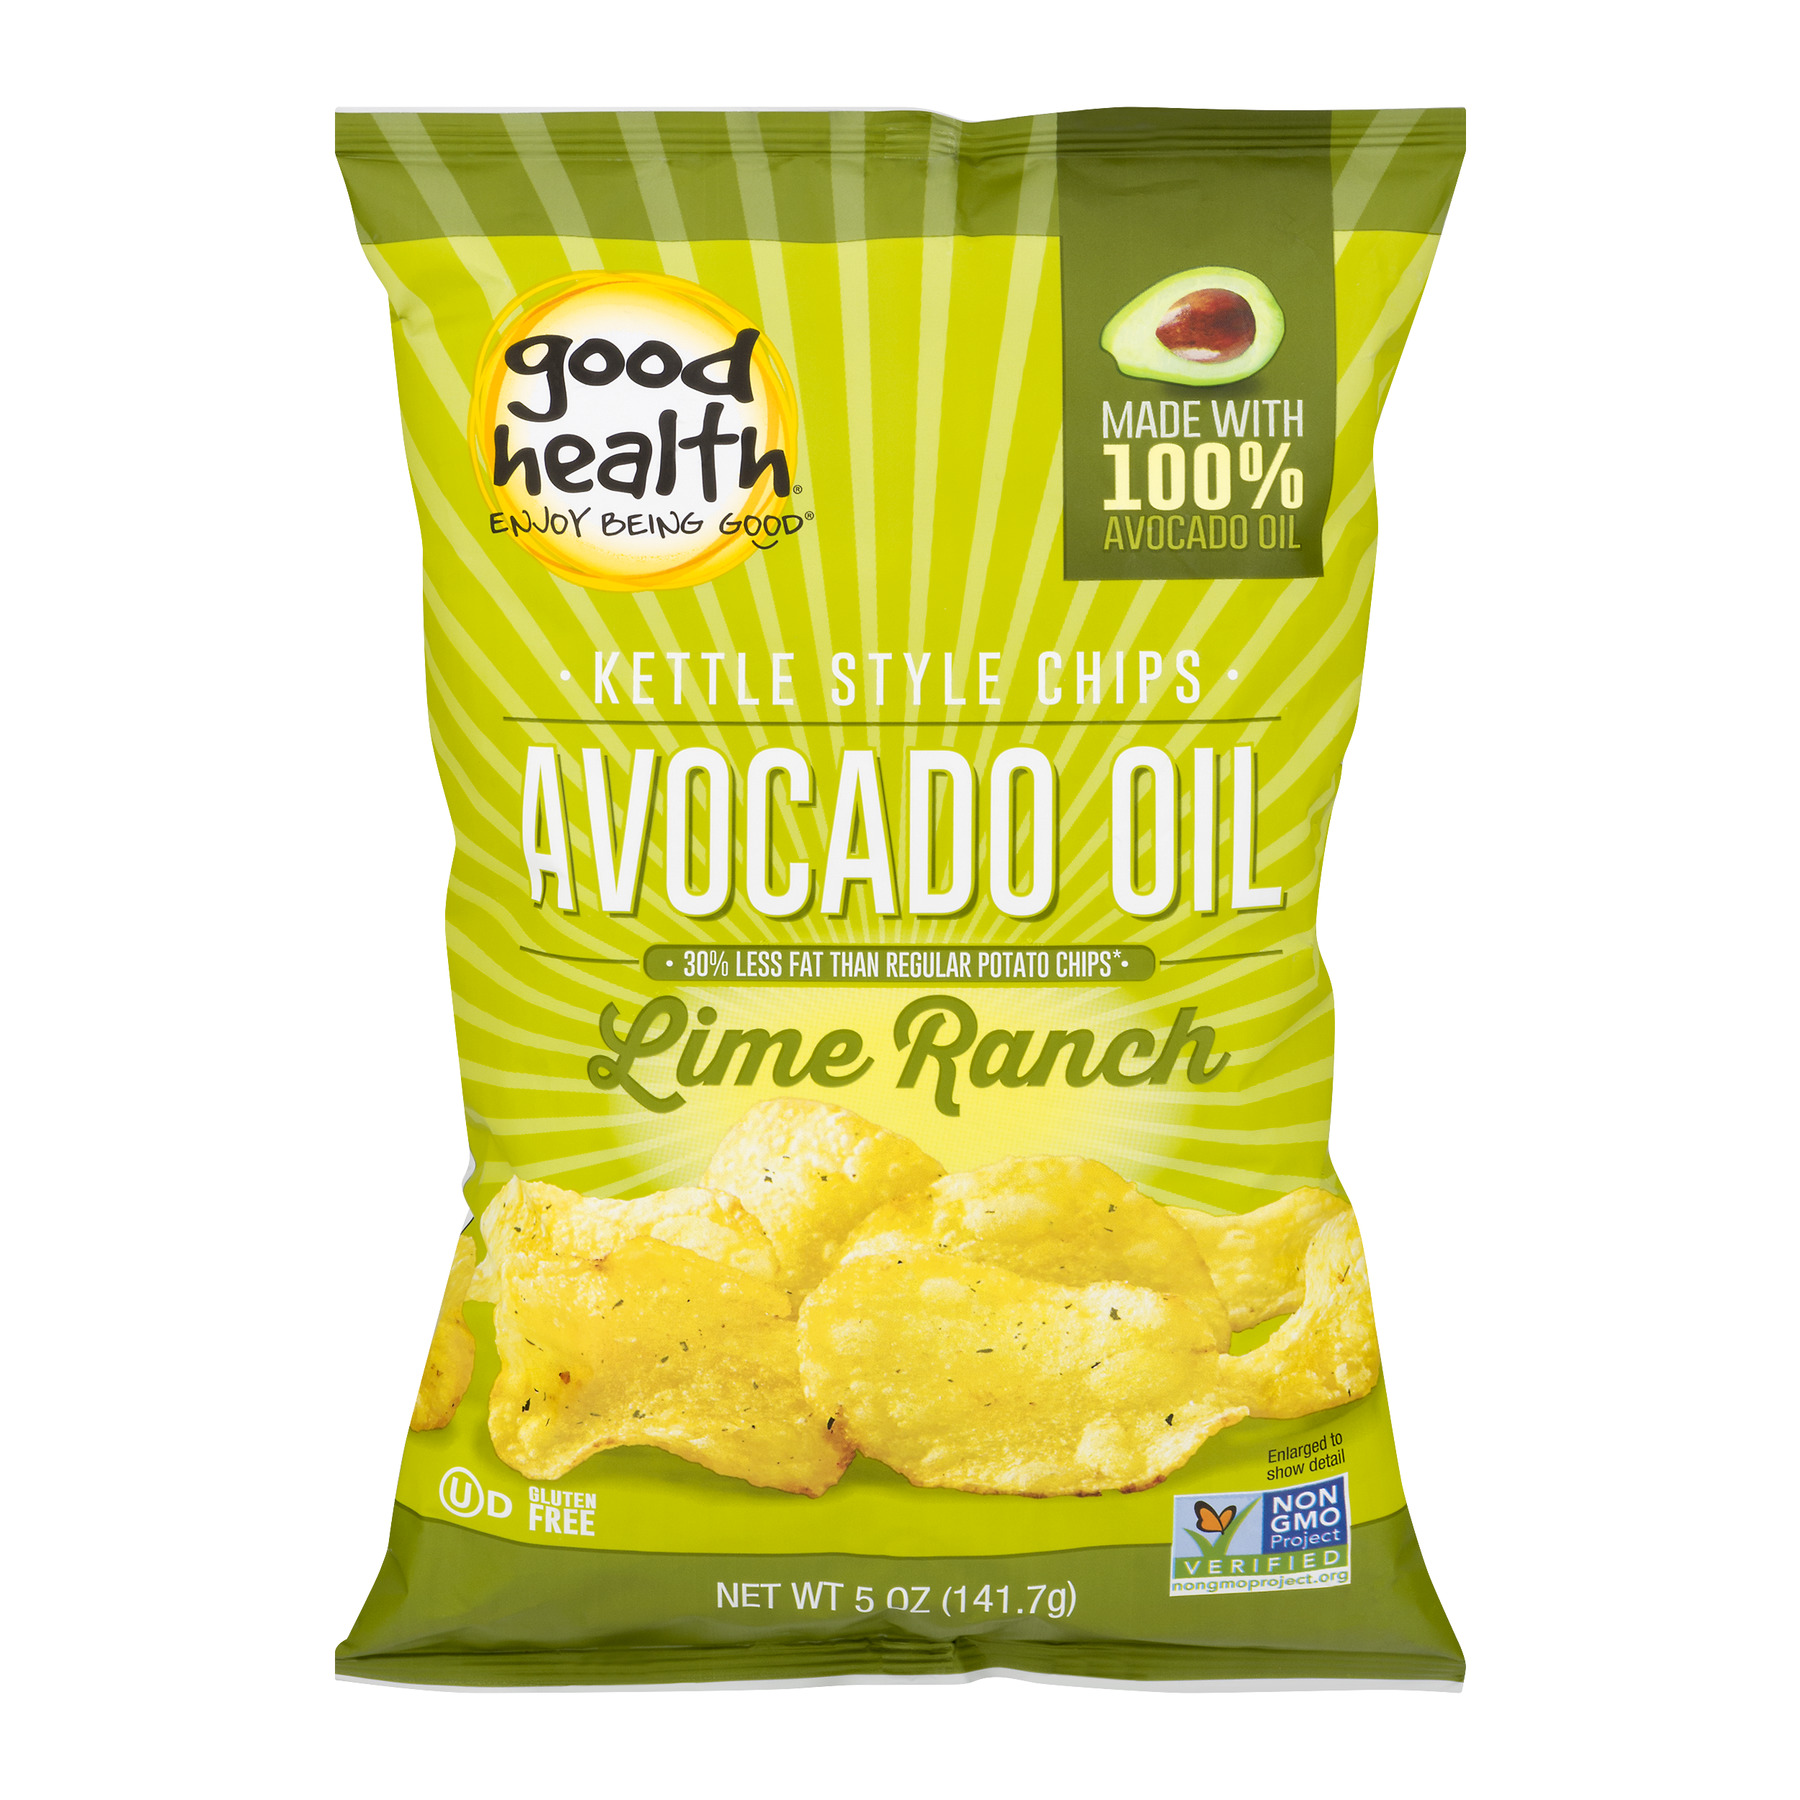 Good Health Avocado Oil Kettle Style Chips Lime Ranch, 5....